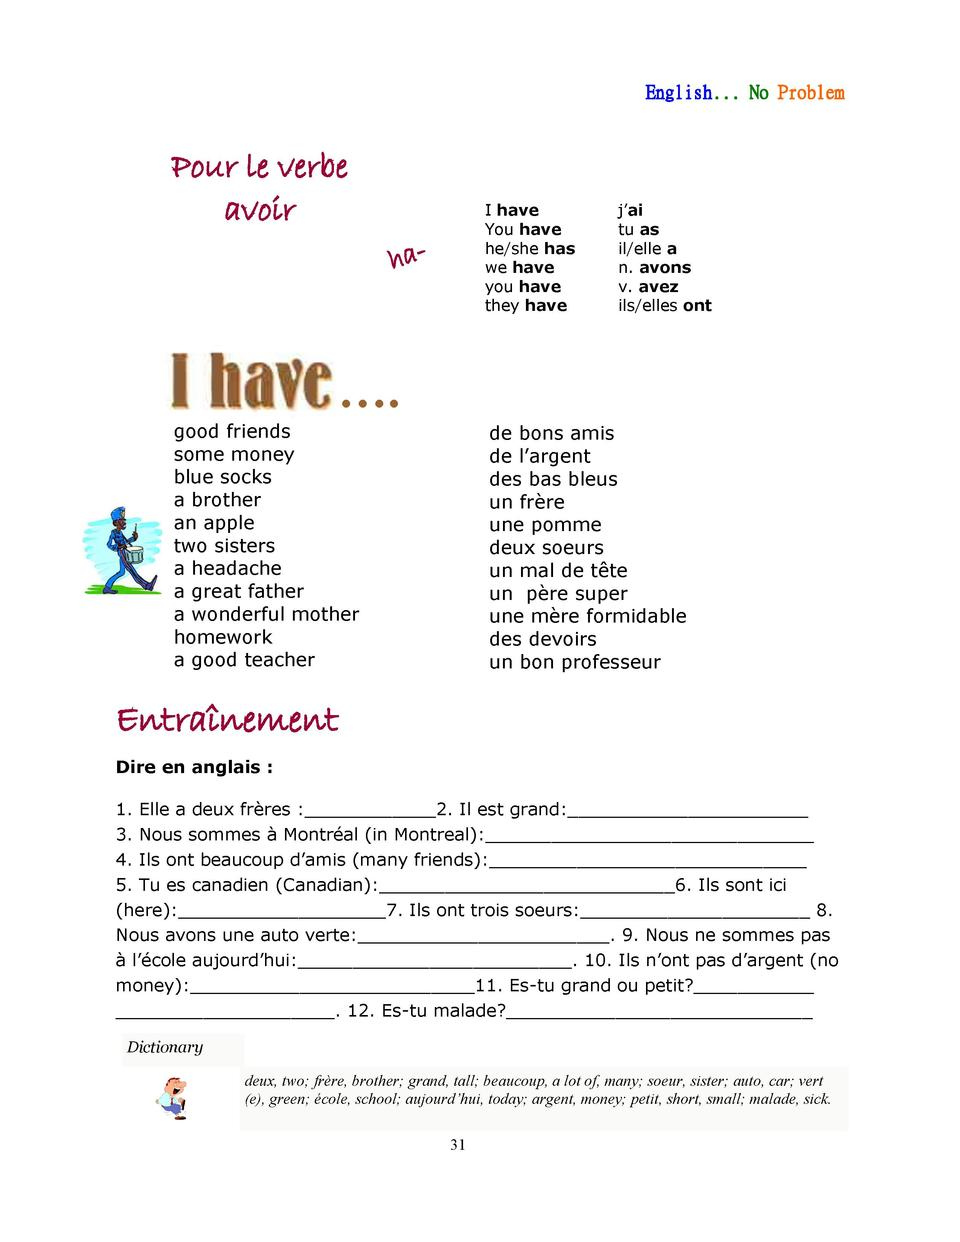 English... No Problem  Pour le verbe avoir  I have You have he she has we have you have they have  ha-  j   ai tu as il el...